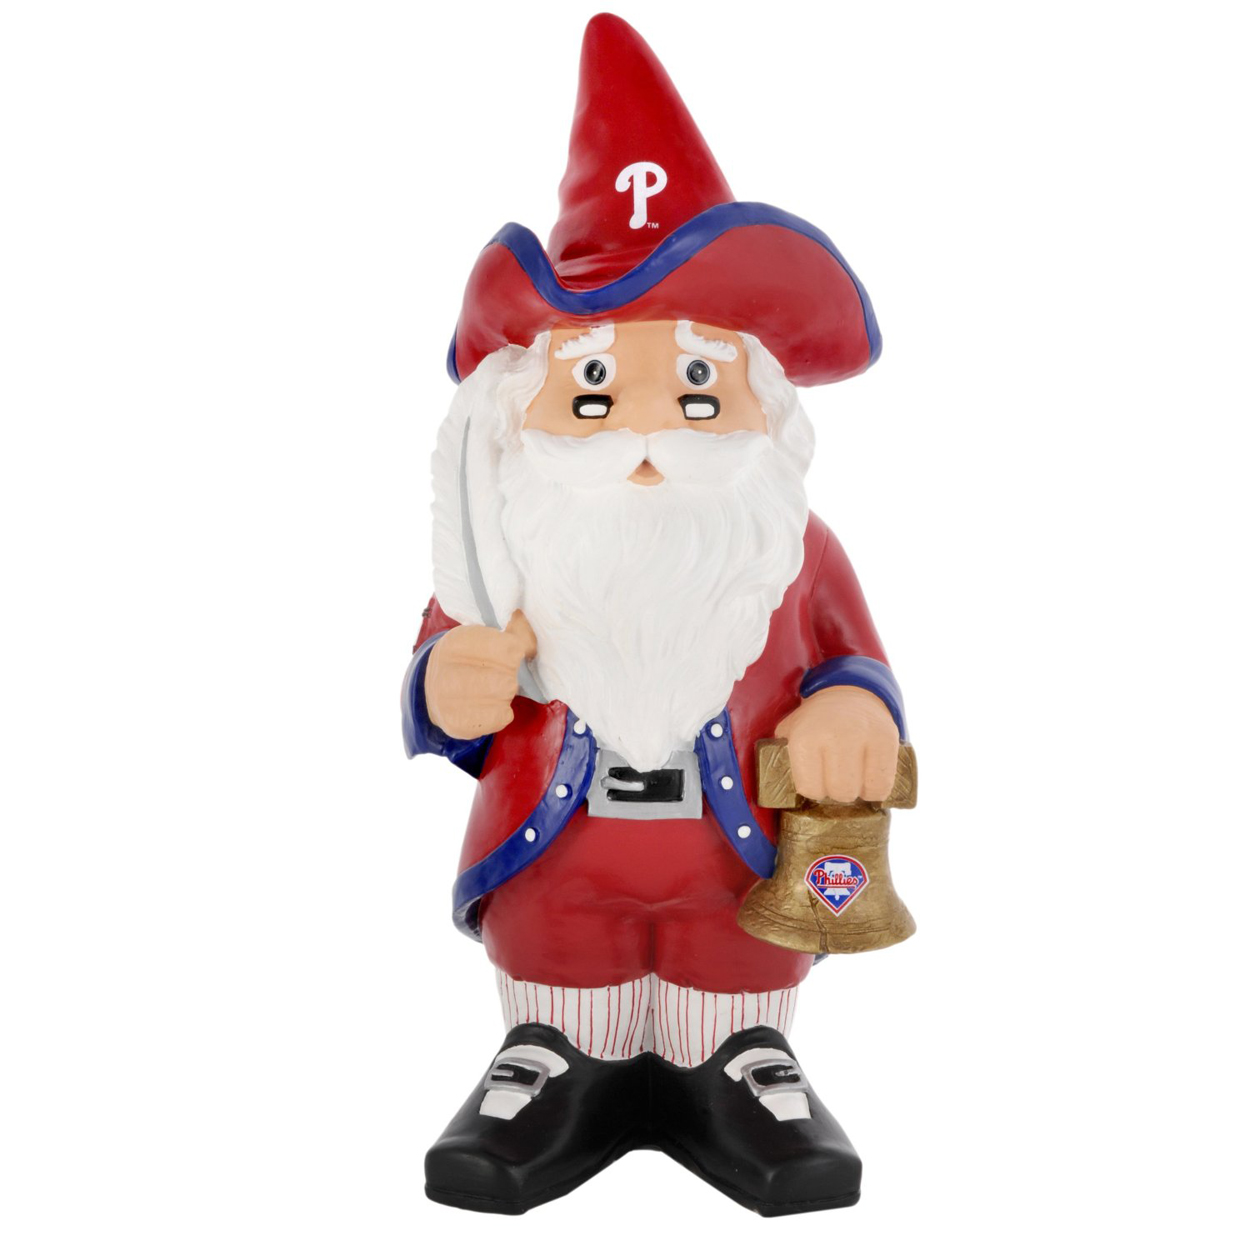 Thematic Gnomes - Philadelphia Phillies